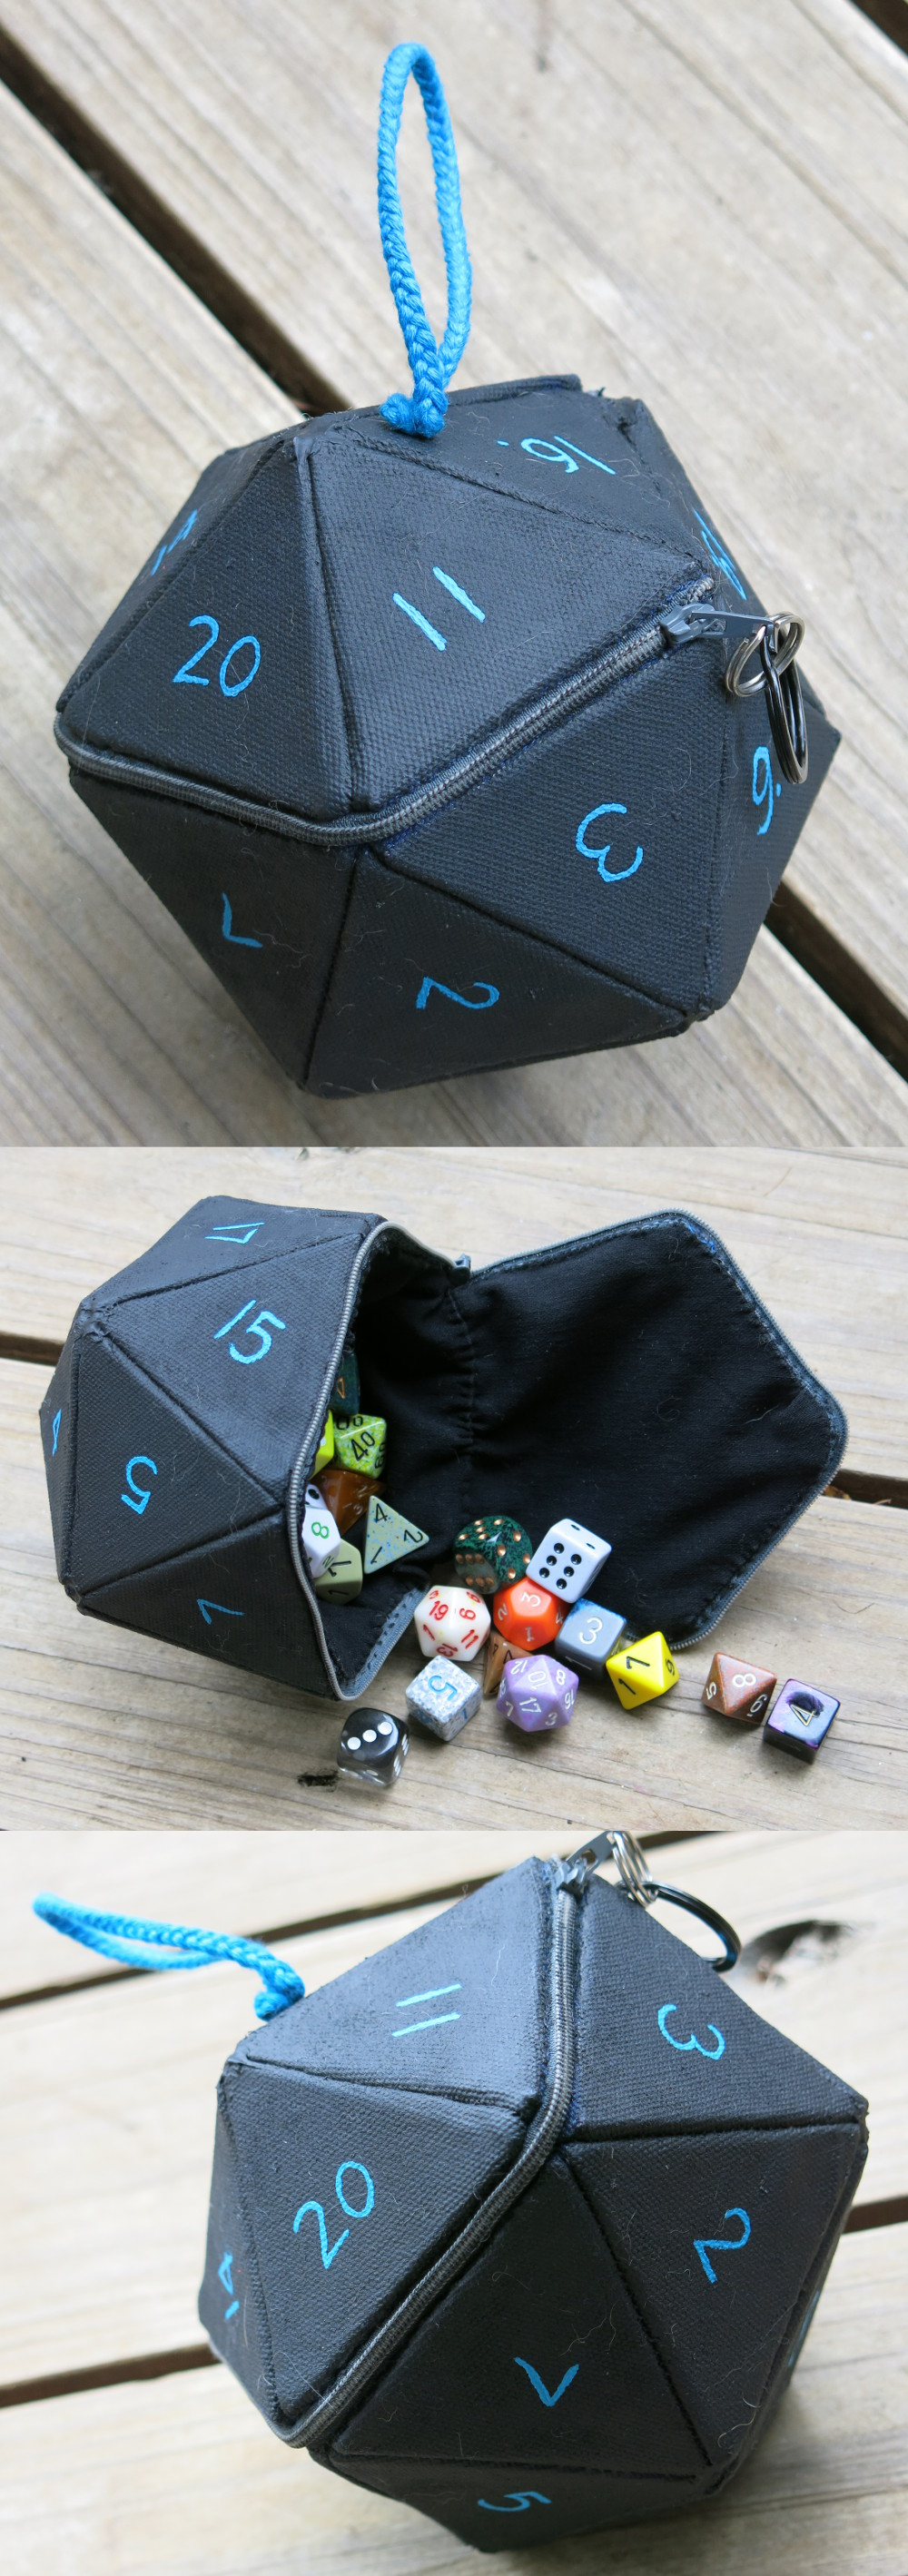 D20 Dice Bag by angermuffin